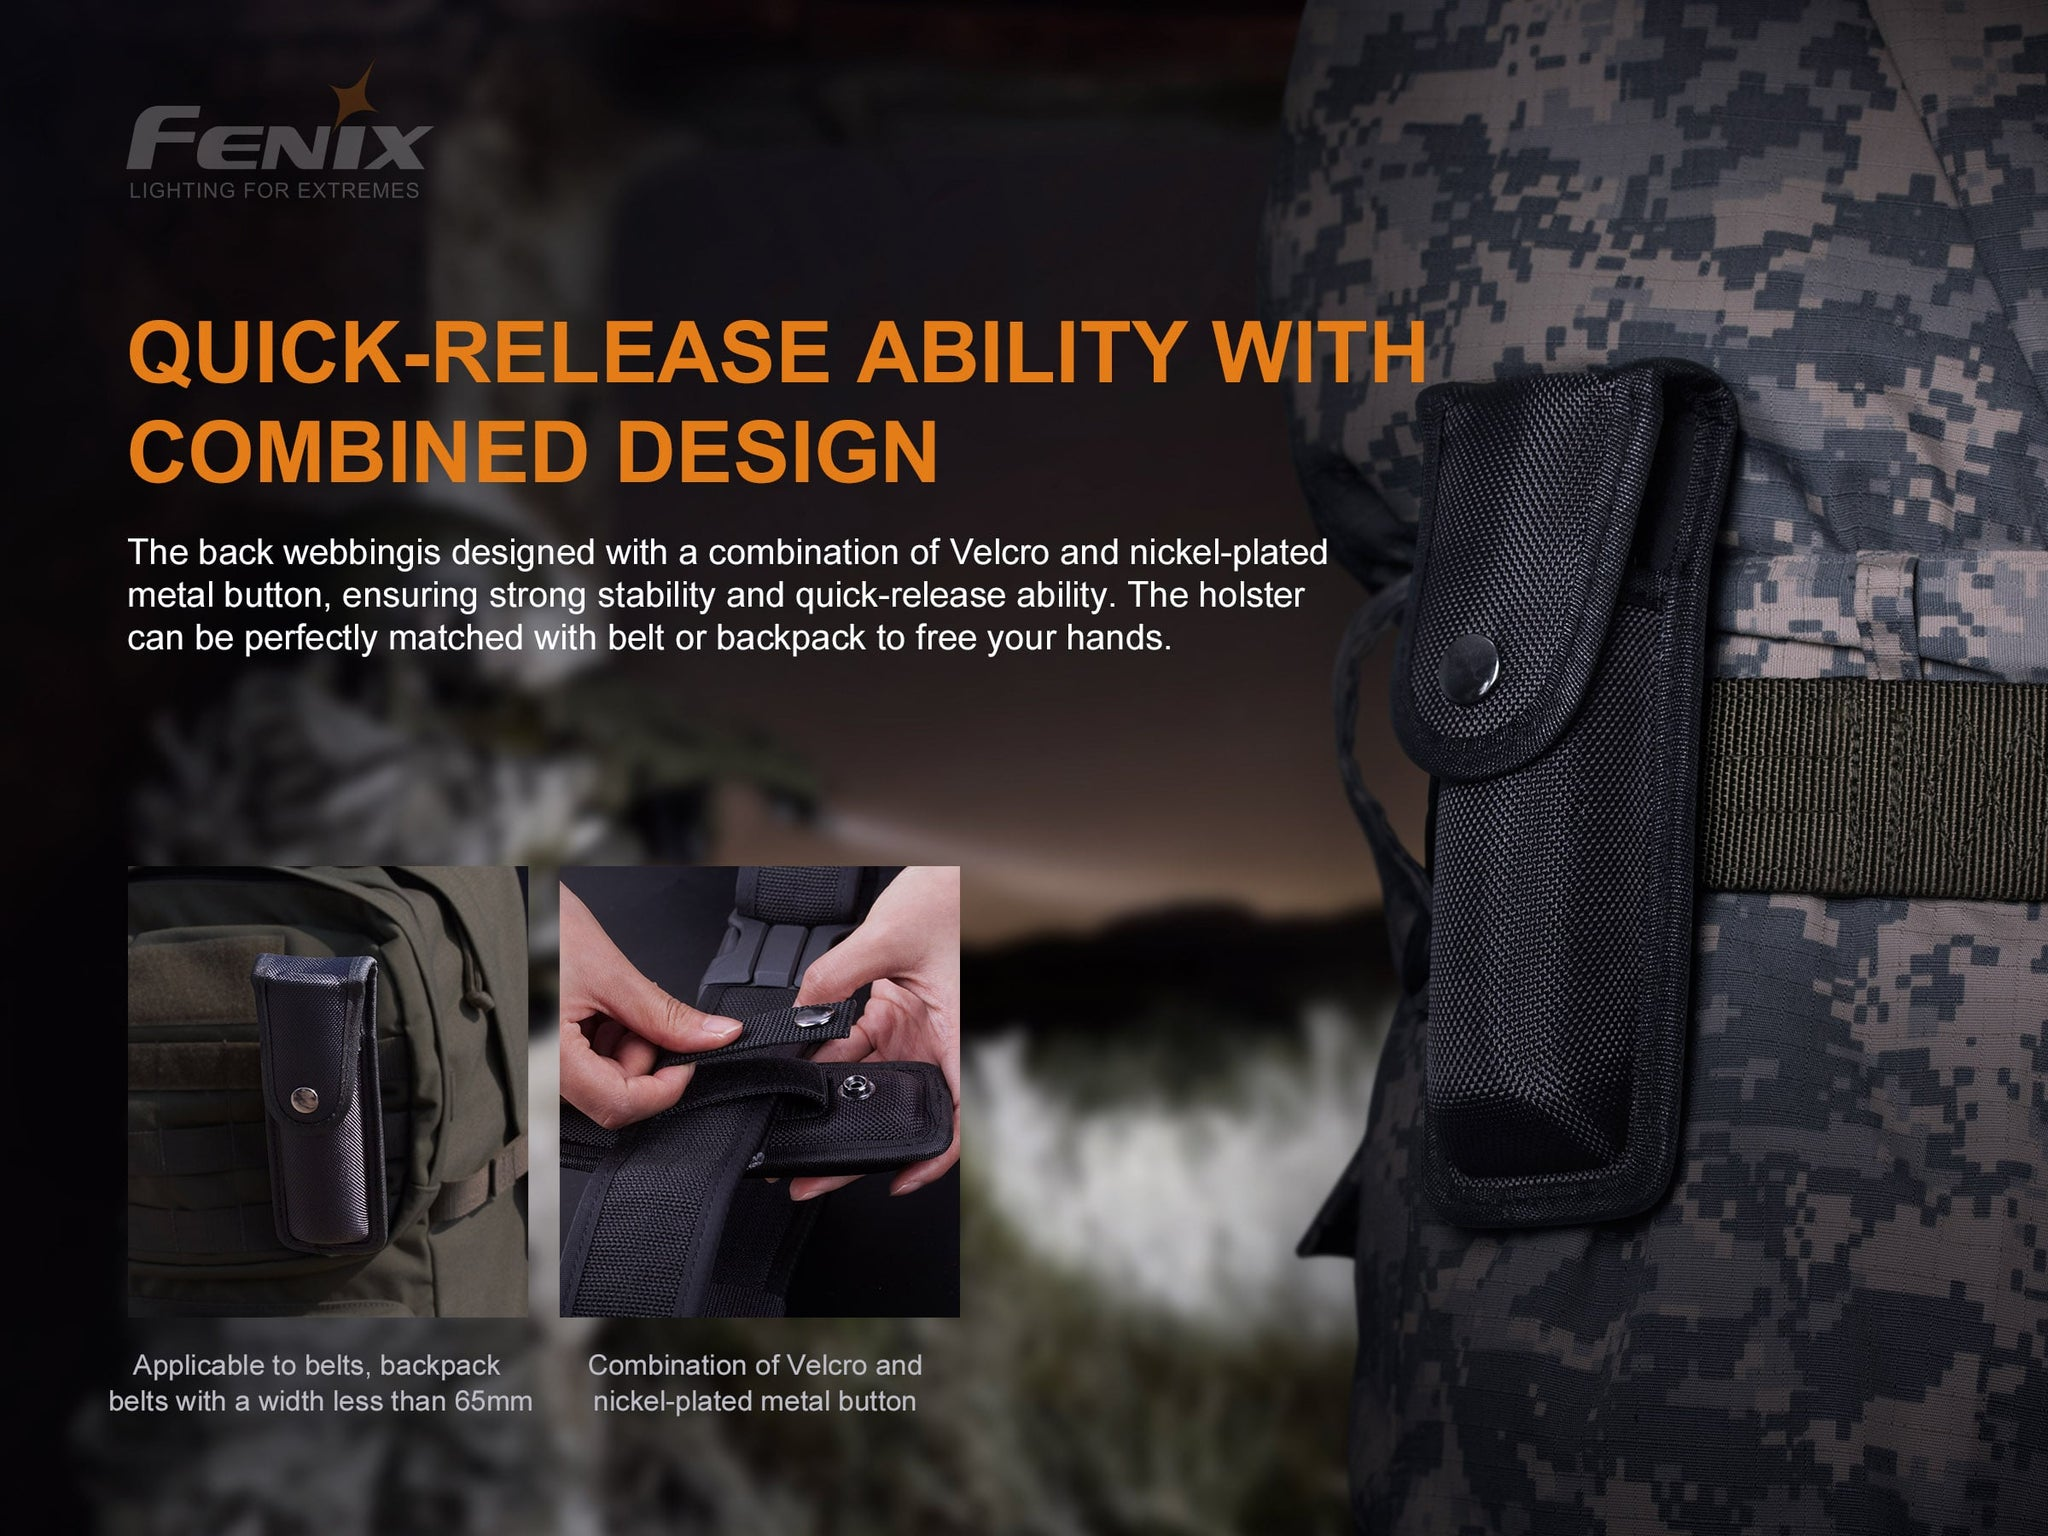 Fenix ALP 10 Tactical Duty Holster, Flashlight Holster, Torch Portable Pouch, Tough Holster Pouch